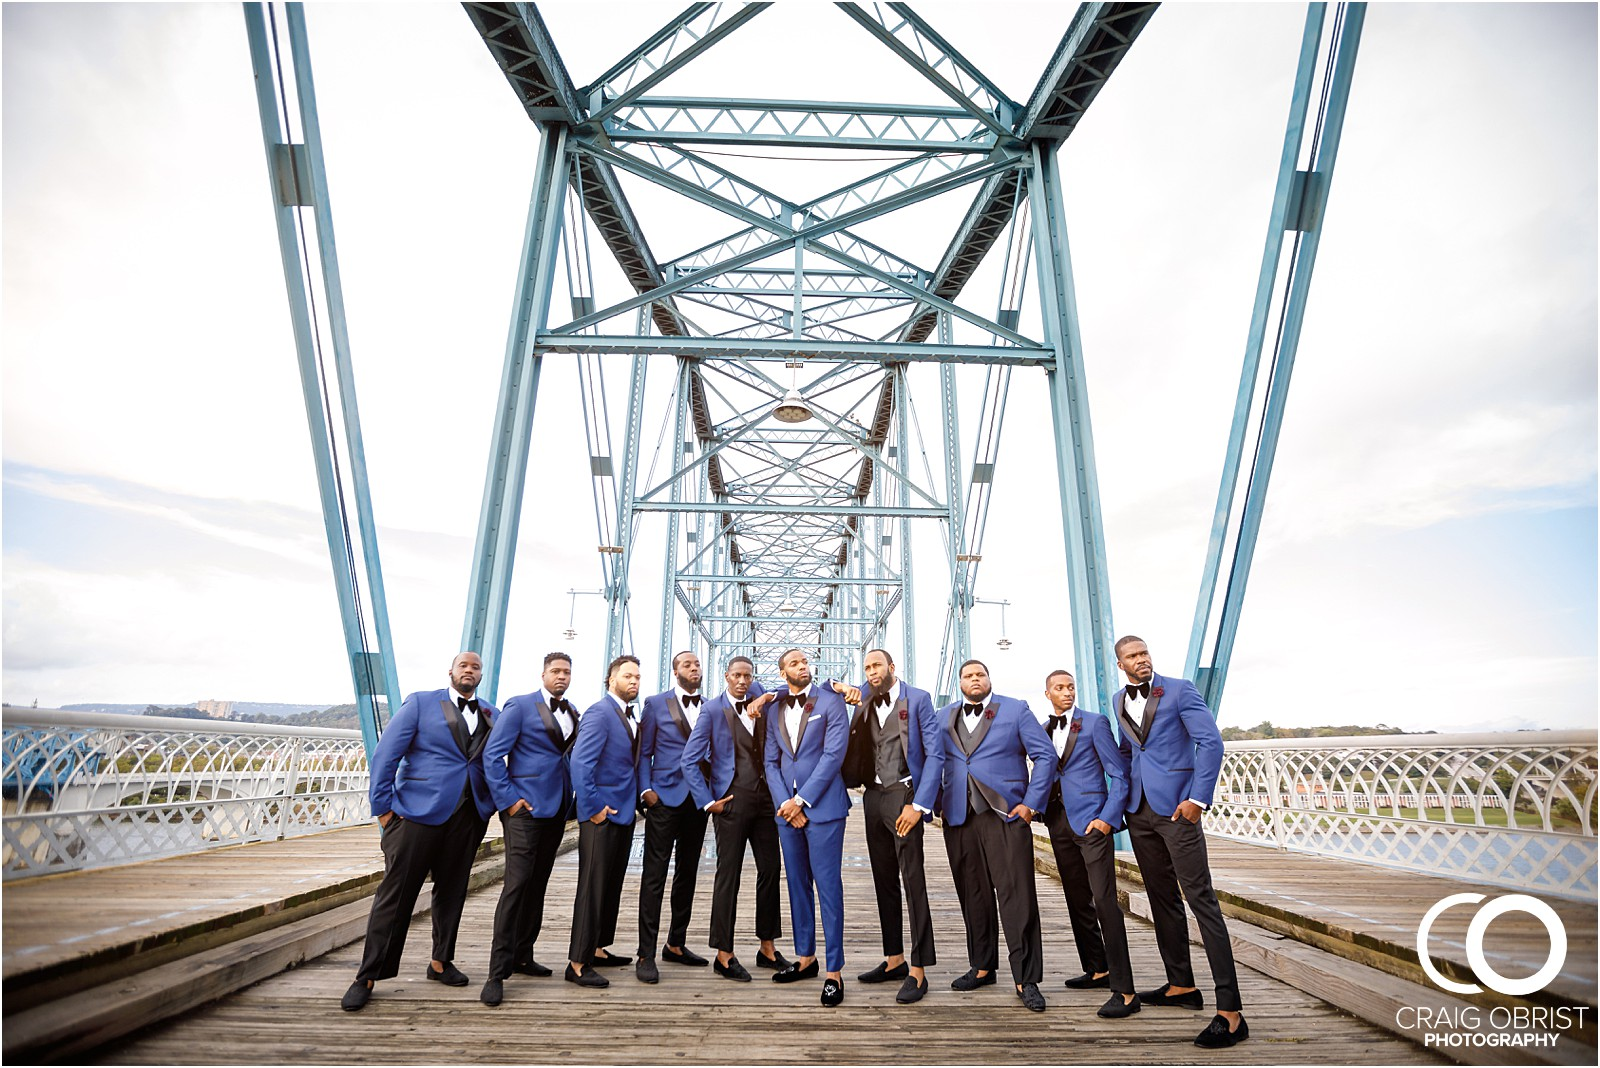 Stratton Hall Chattanooga Walnut Street Bridge Wedding Portraits_0036.jpg